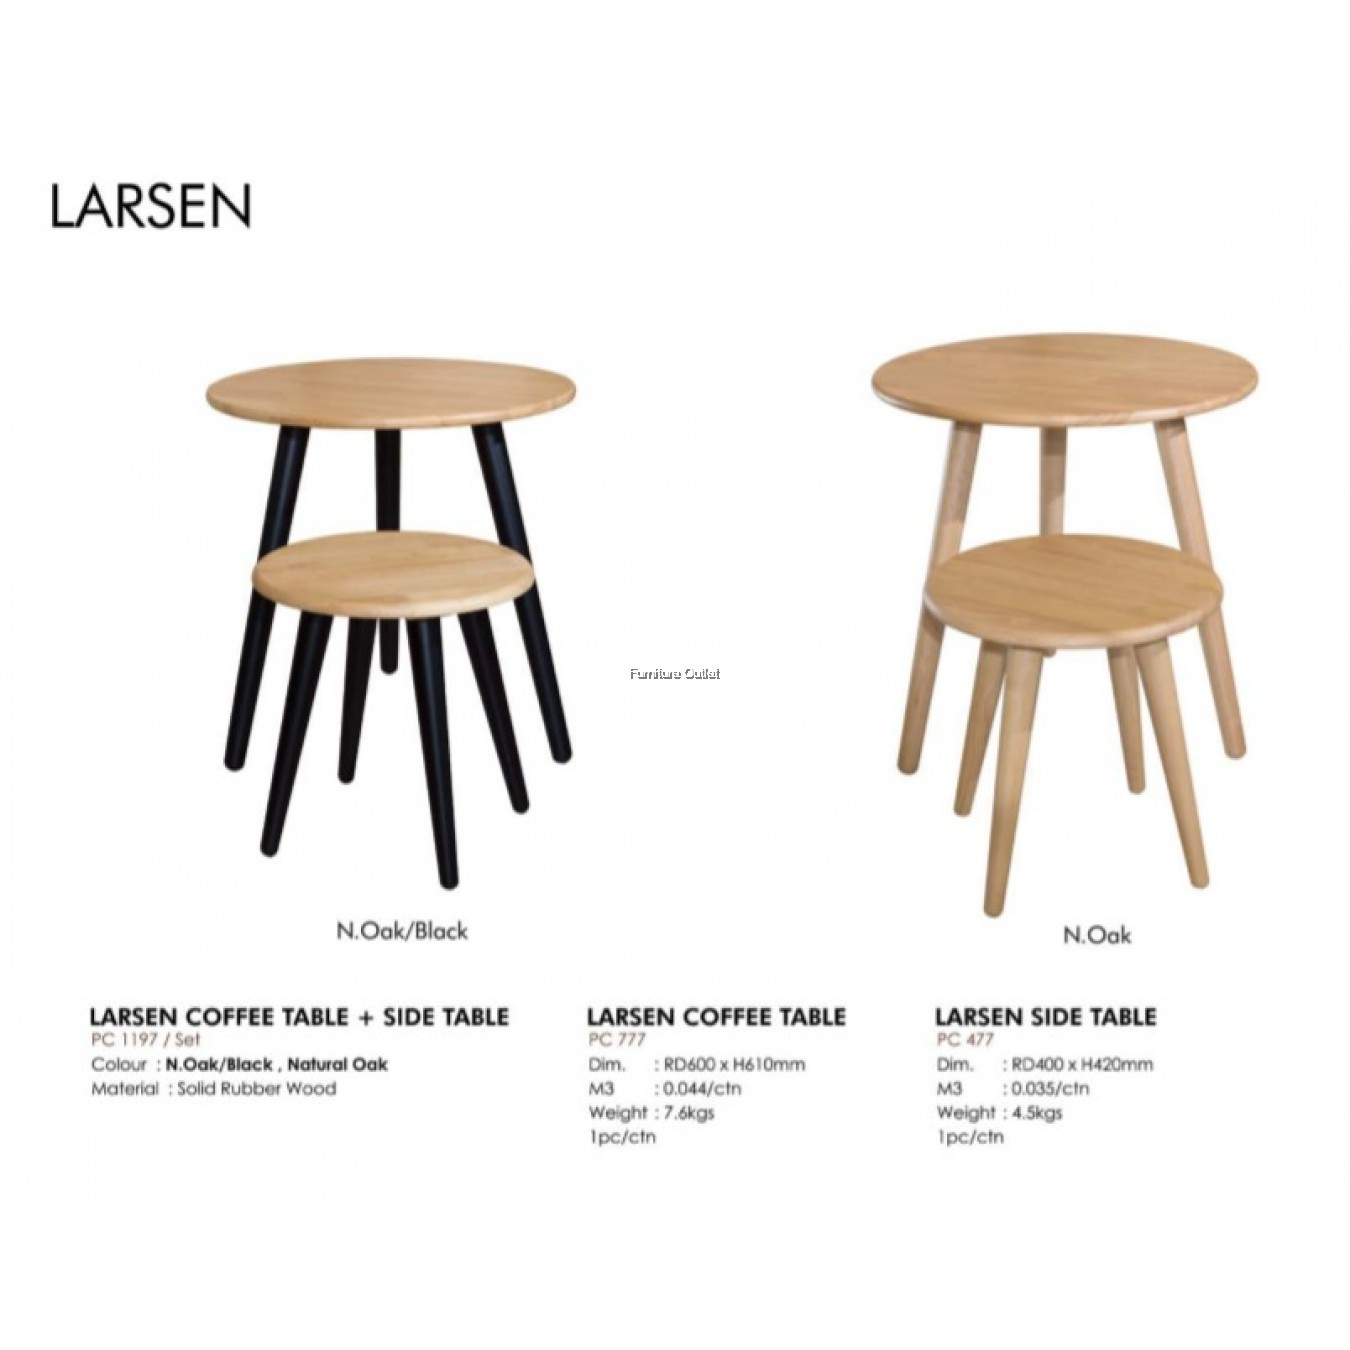 LARSEN COFFEE TABLE + SIDE TABLE